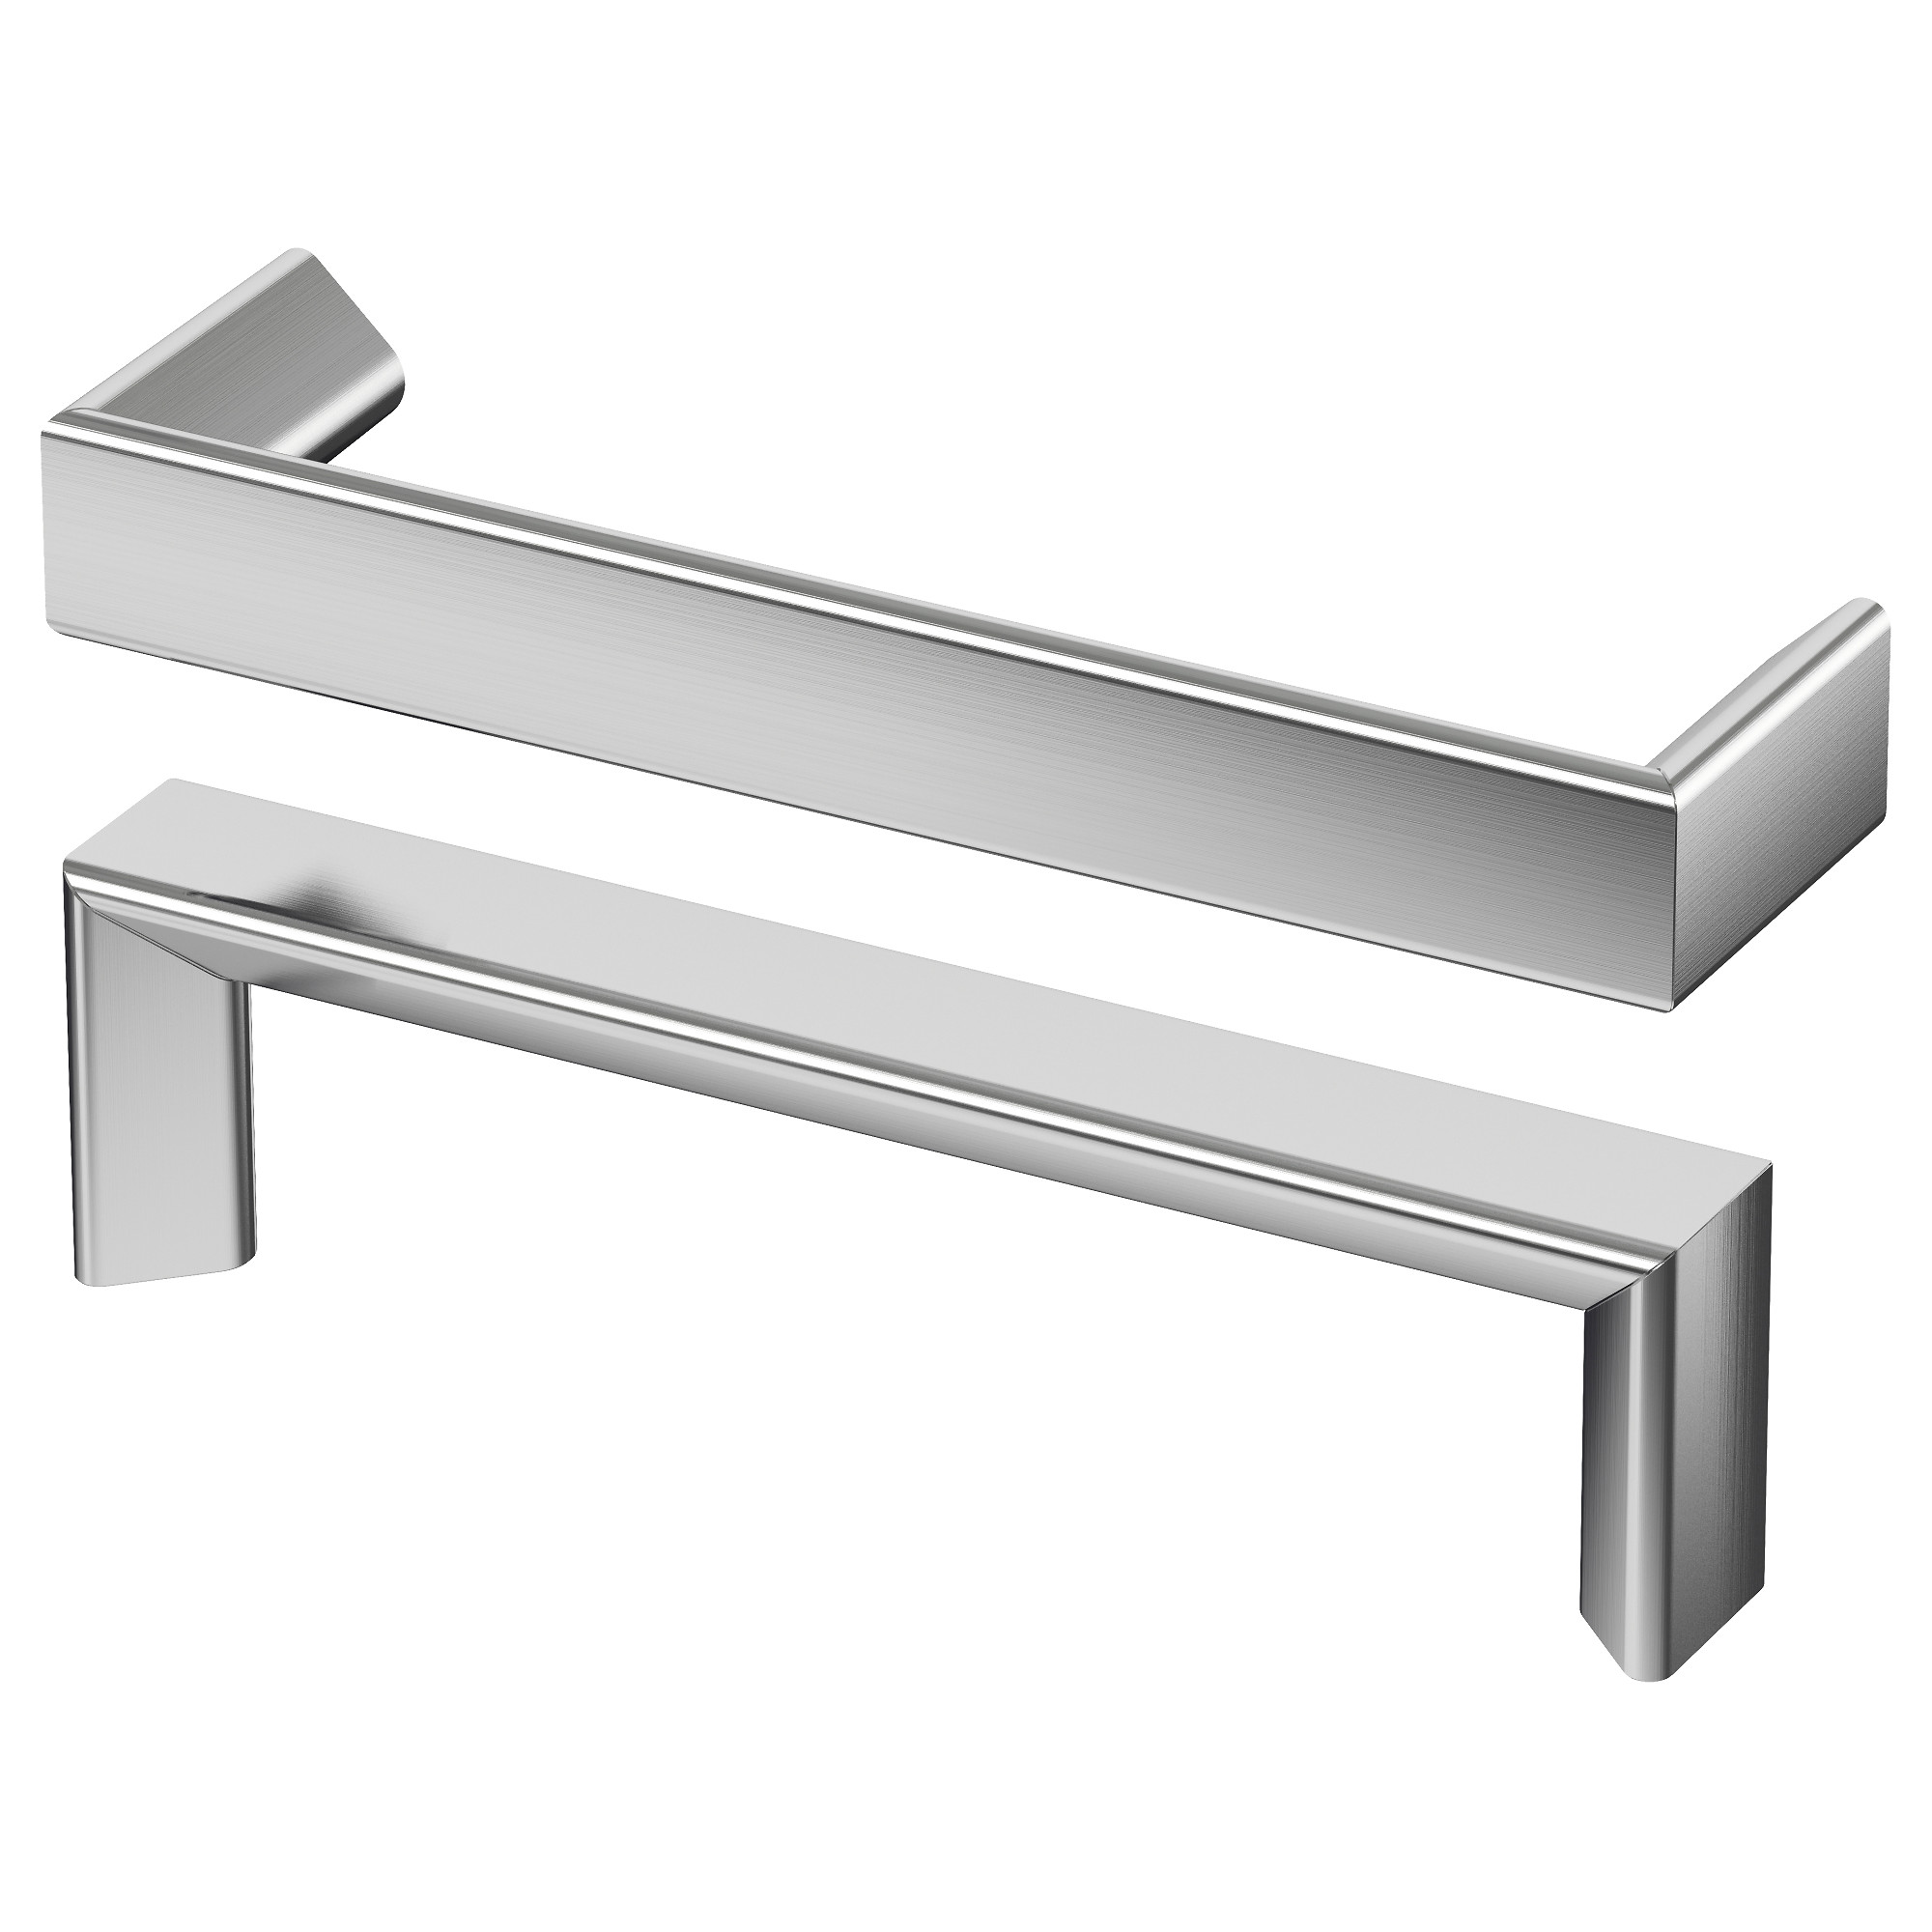 furniture handles. tyda handle, stainless steel length: 5 3/8 \ furniture handles t